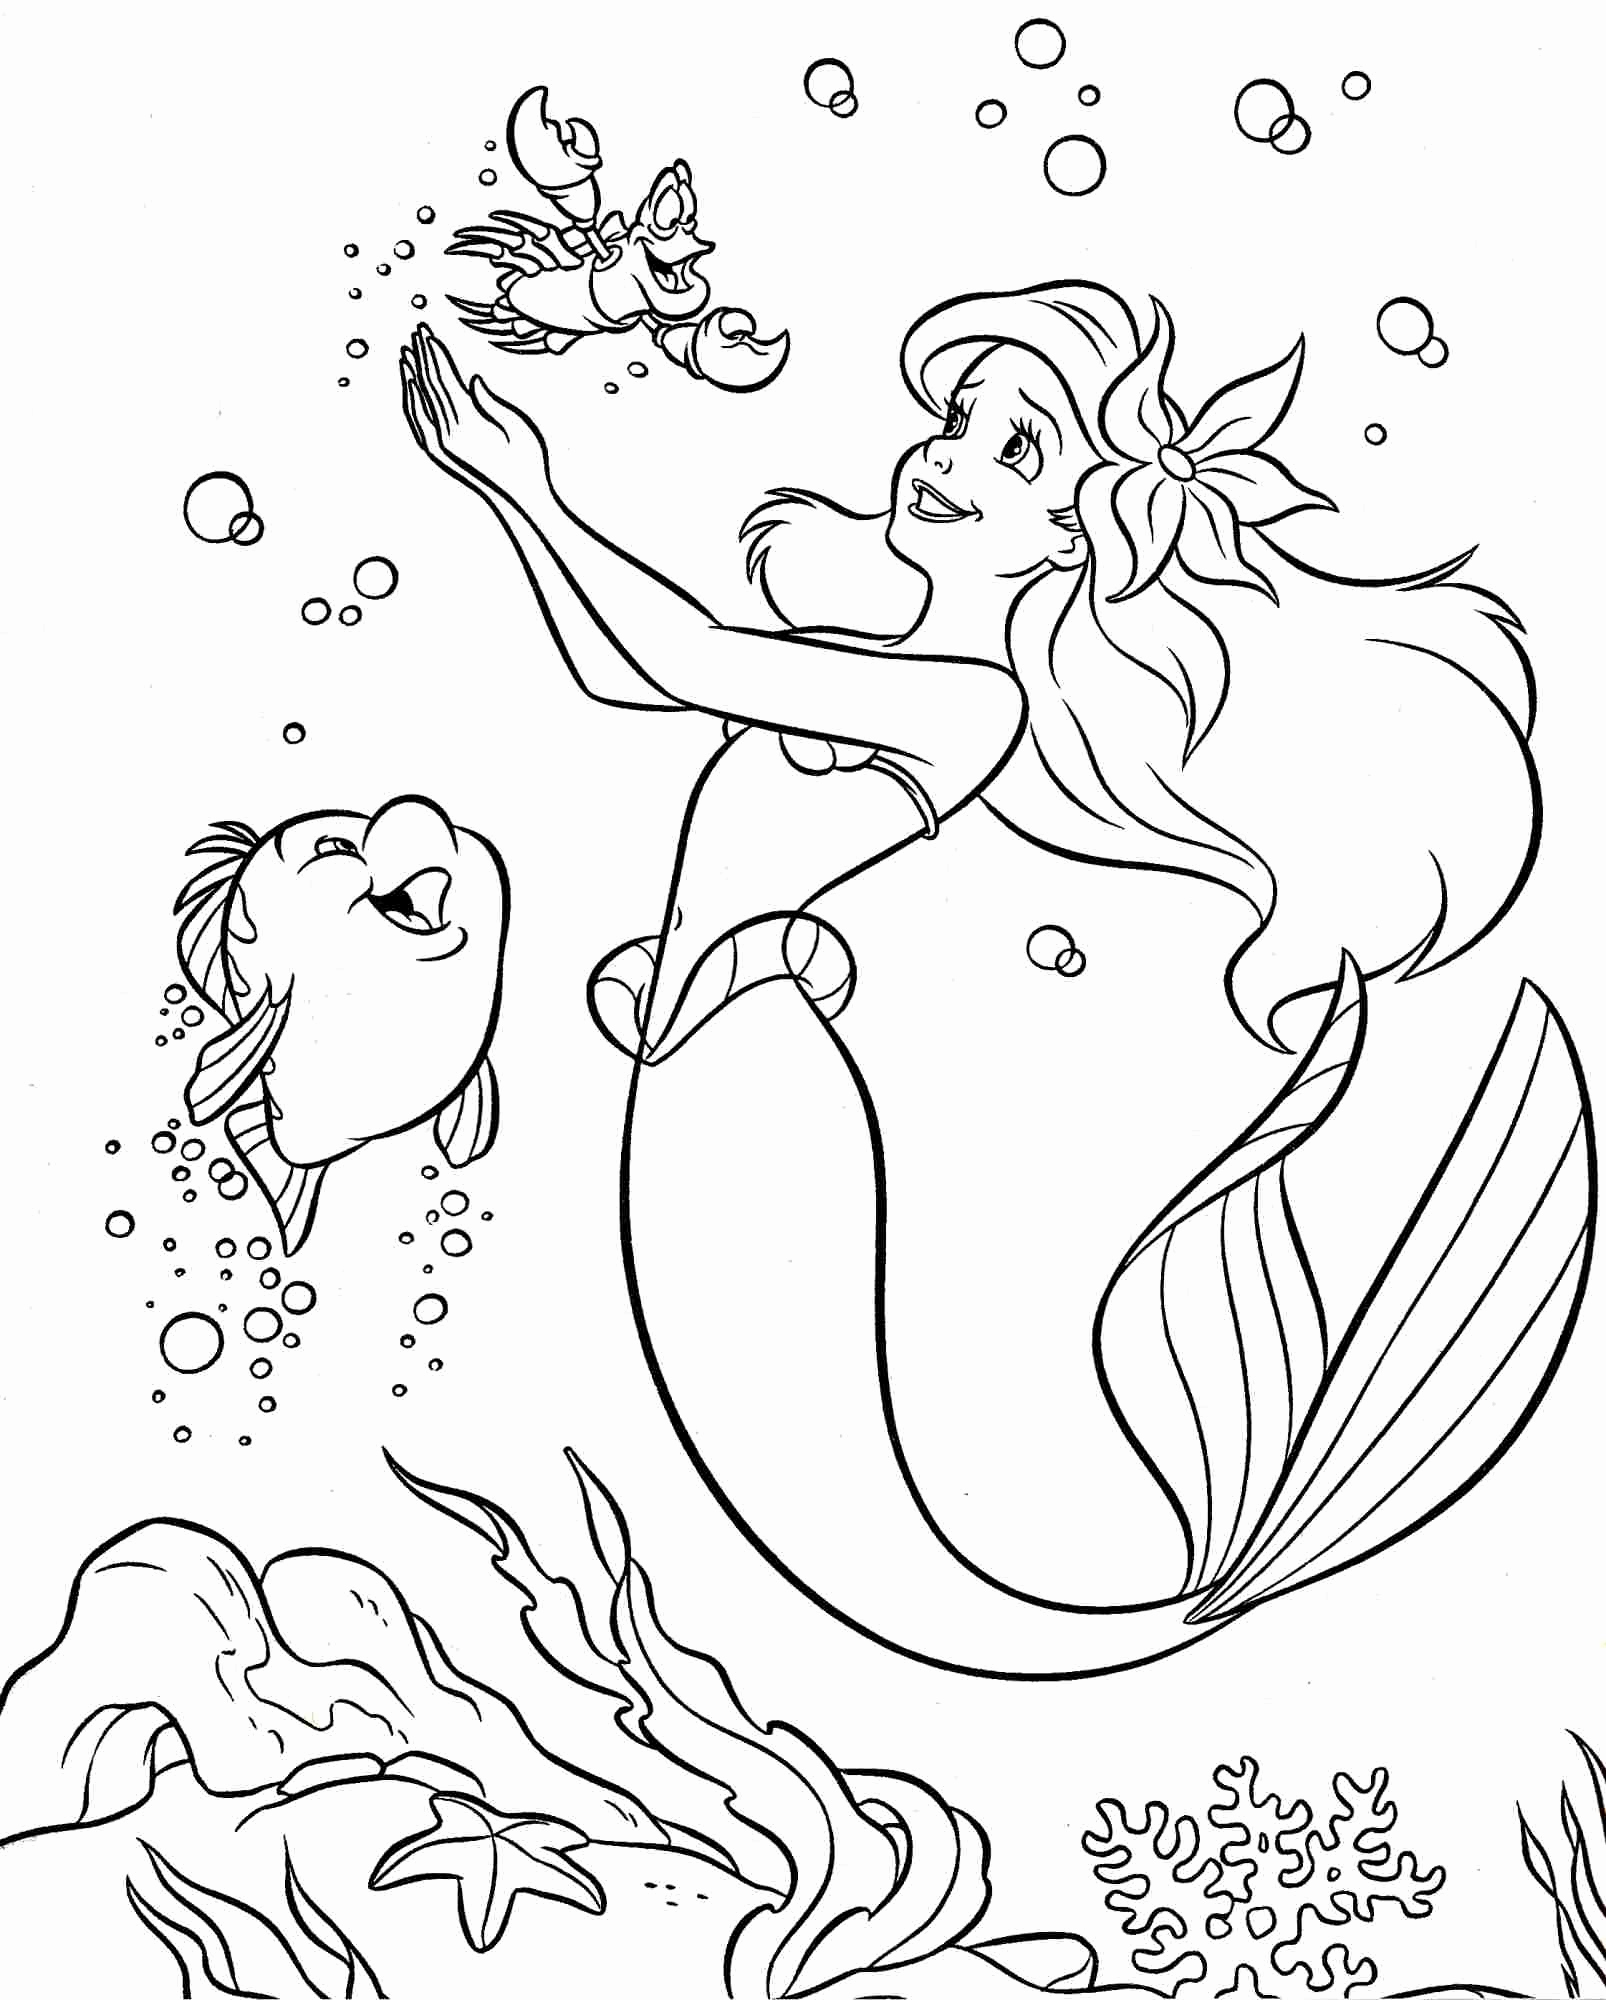 coloring pictures of mermaids mermaid coloring pages to download and print for free pictures mermaids coloring of